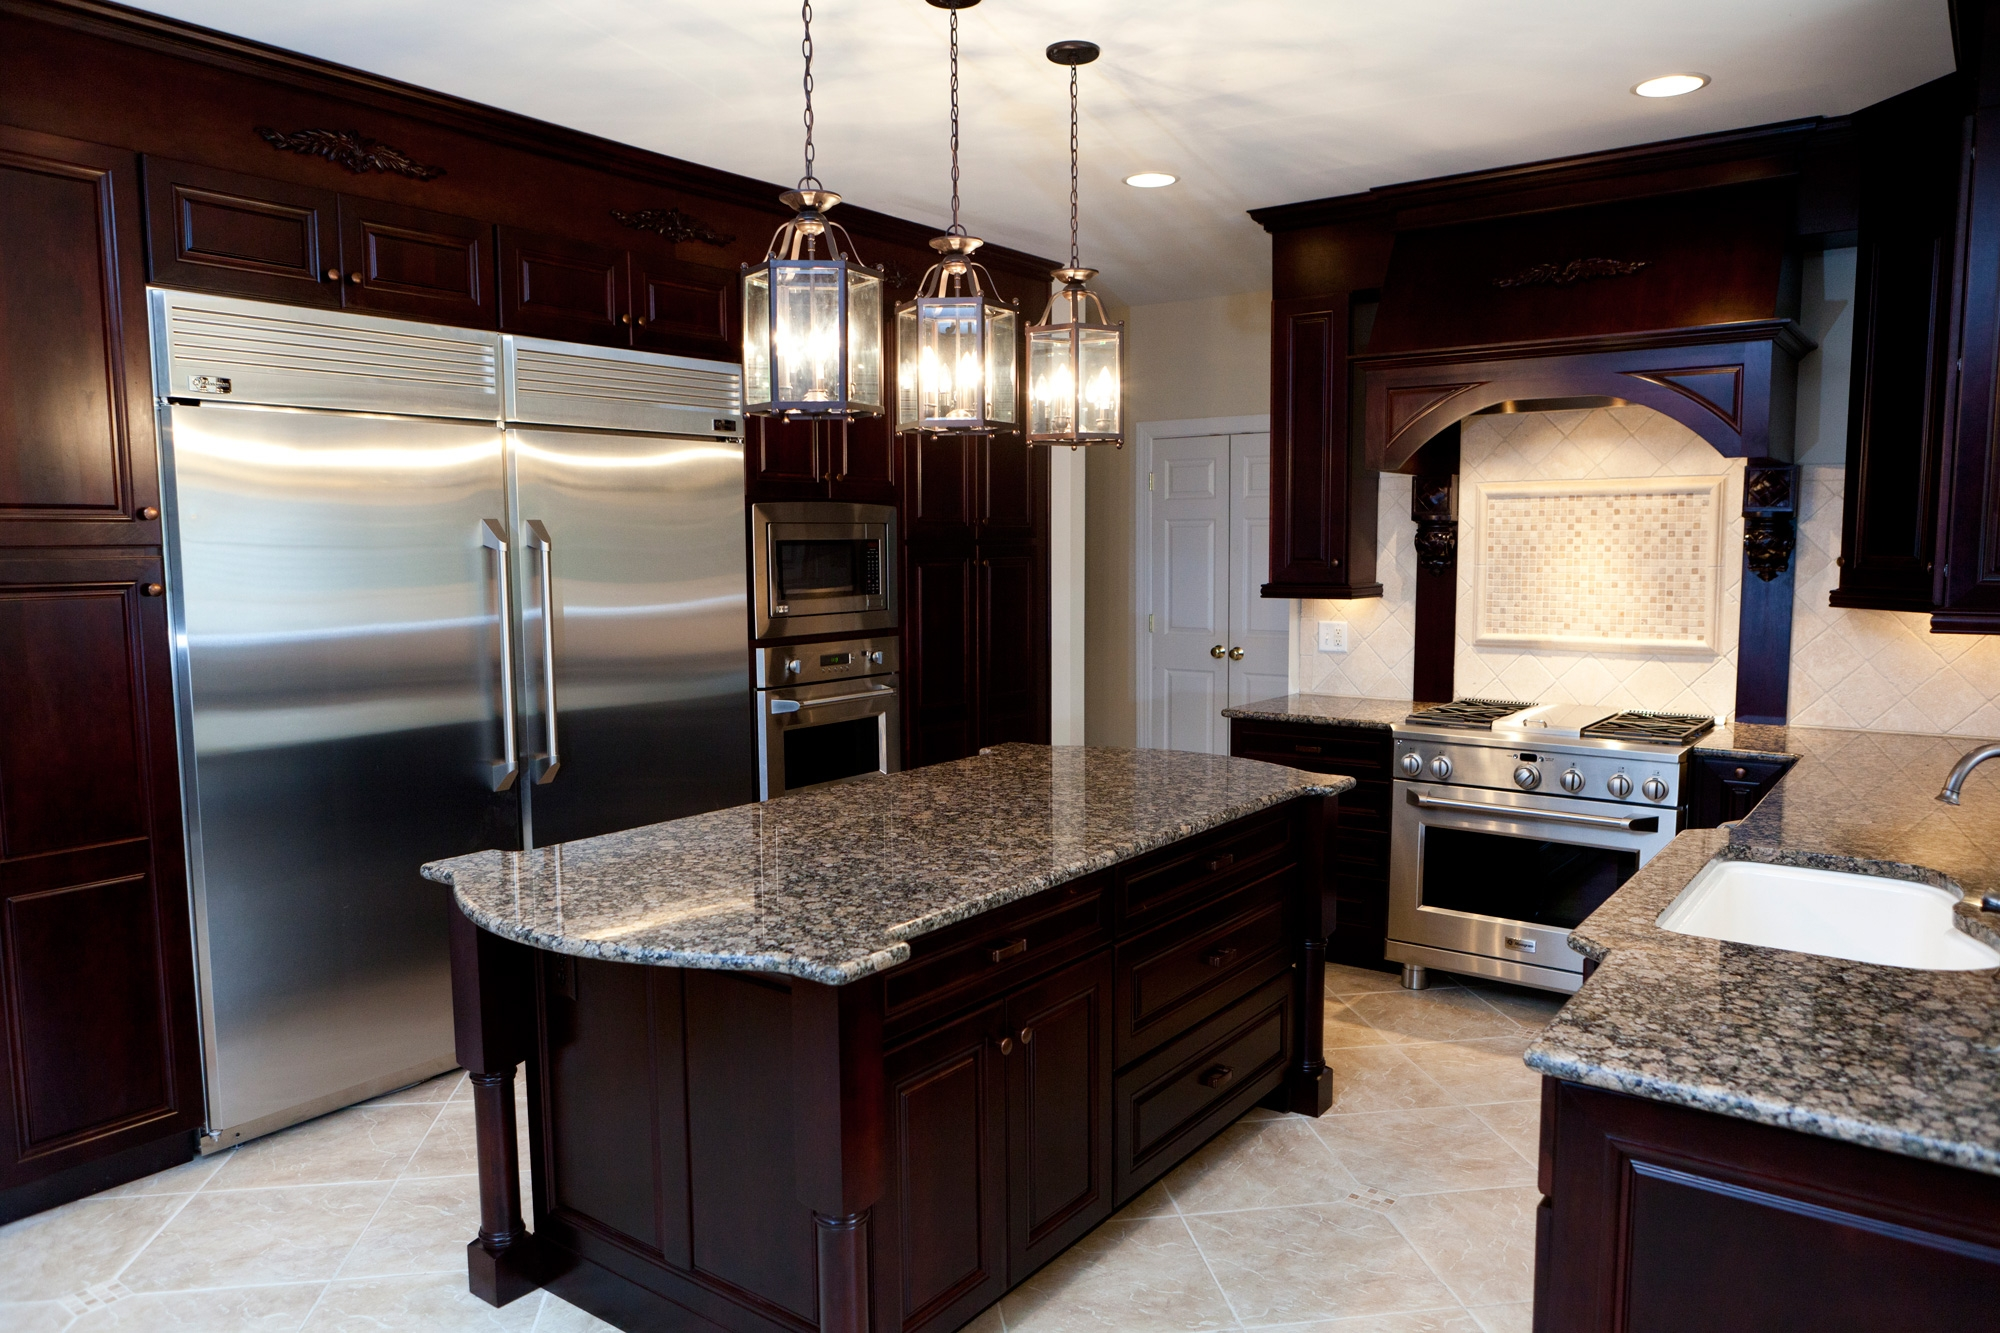 Kitchen Pictures Of Remodeled Kitchens For Your Next